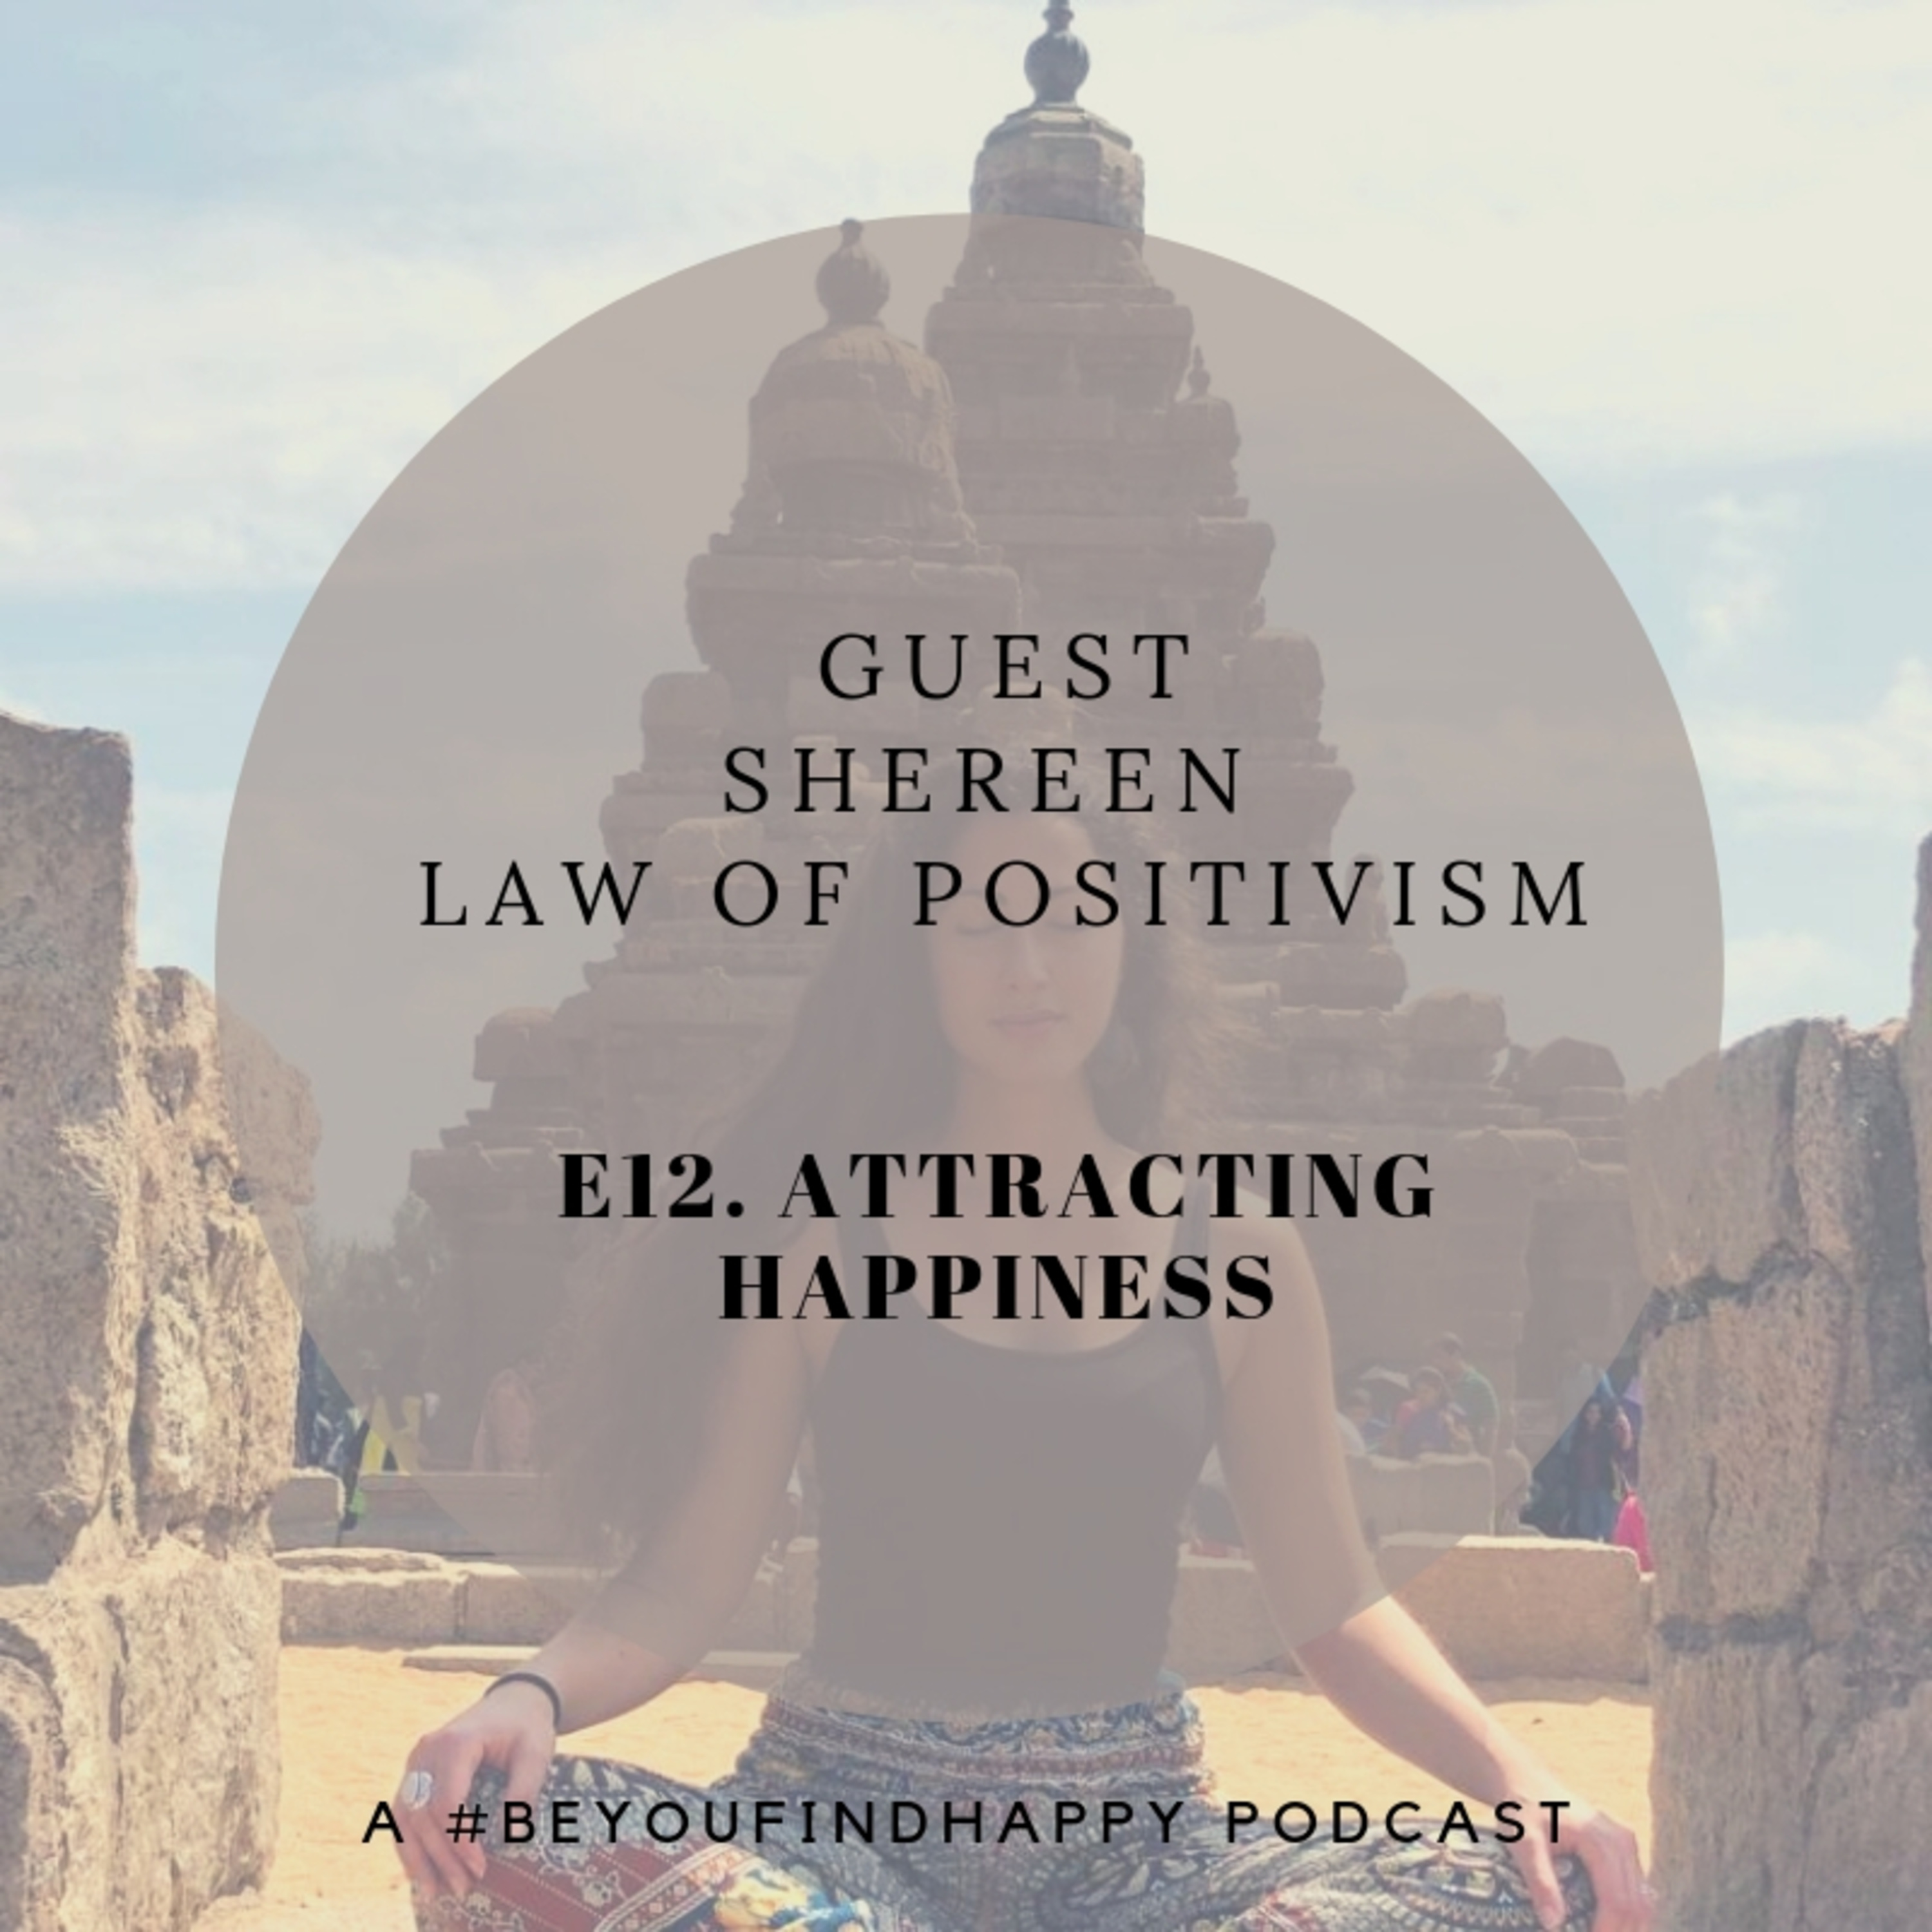 E12 GUEST Law of Positivism: Attracting Happiness